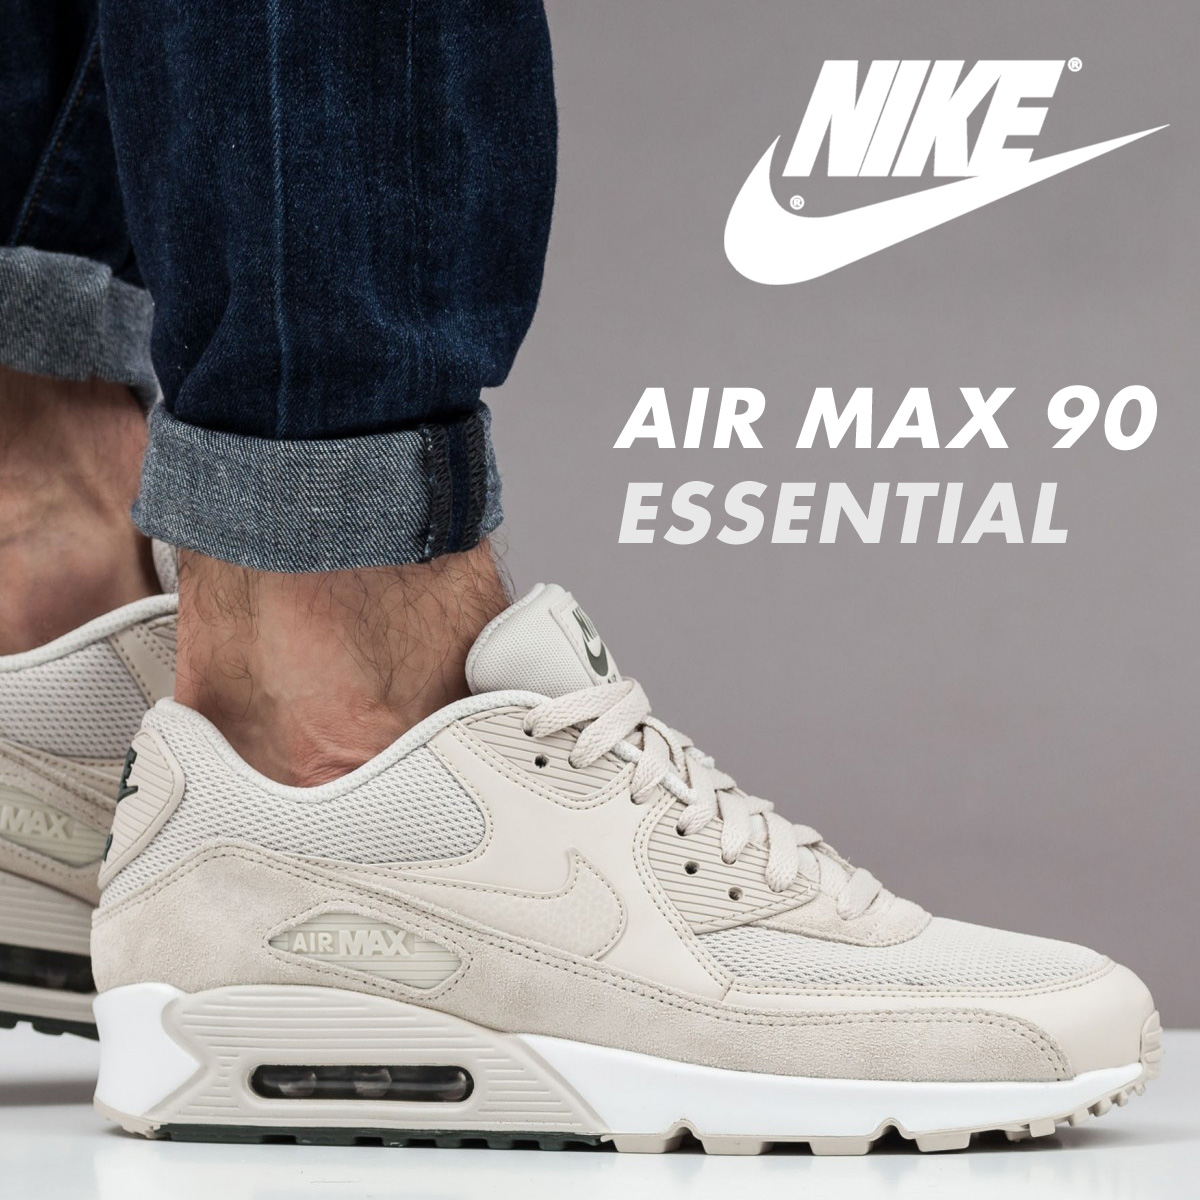 03b9d825a7f ... Nike NIKE Air Max 90 essential sneakers AIR MAX 90 ESSENTIAL  537,384-132 men's shoes ...